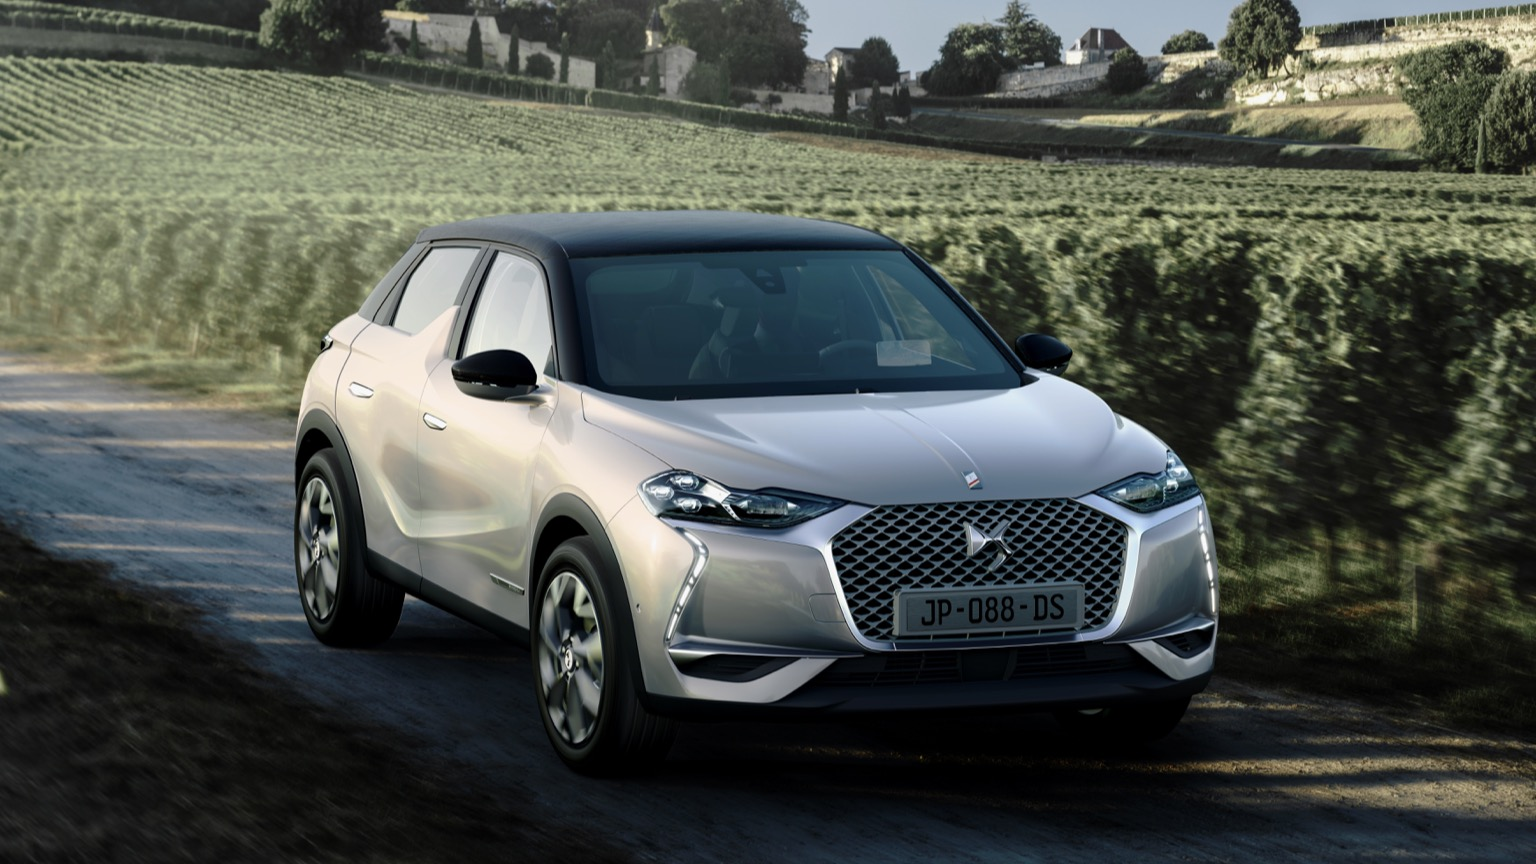 DS 3 Crossback e-tense 8 procent